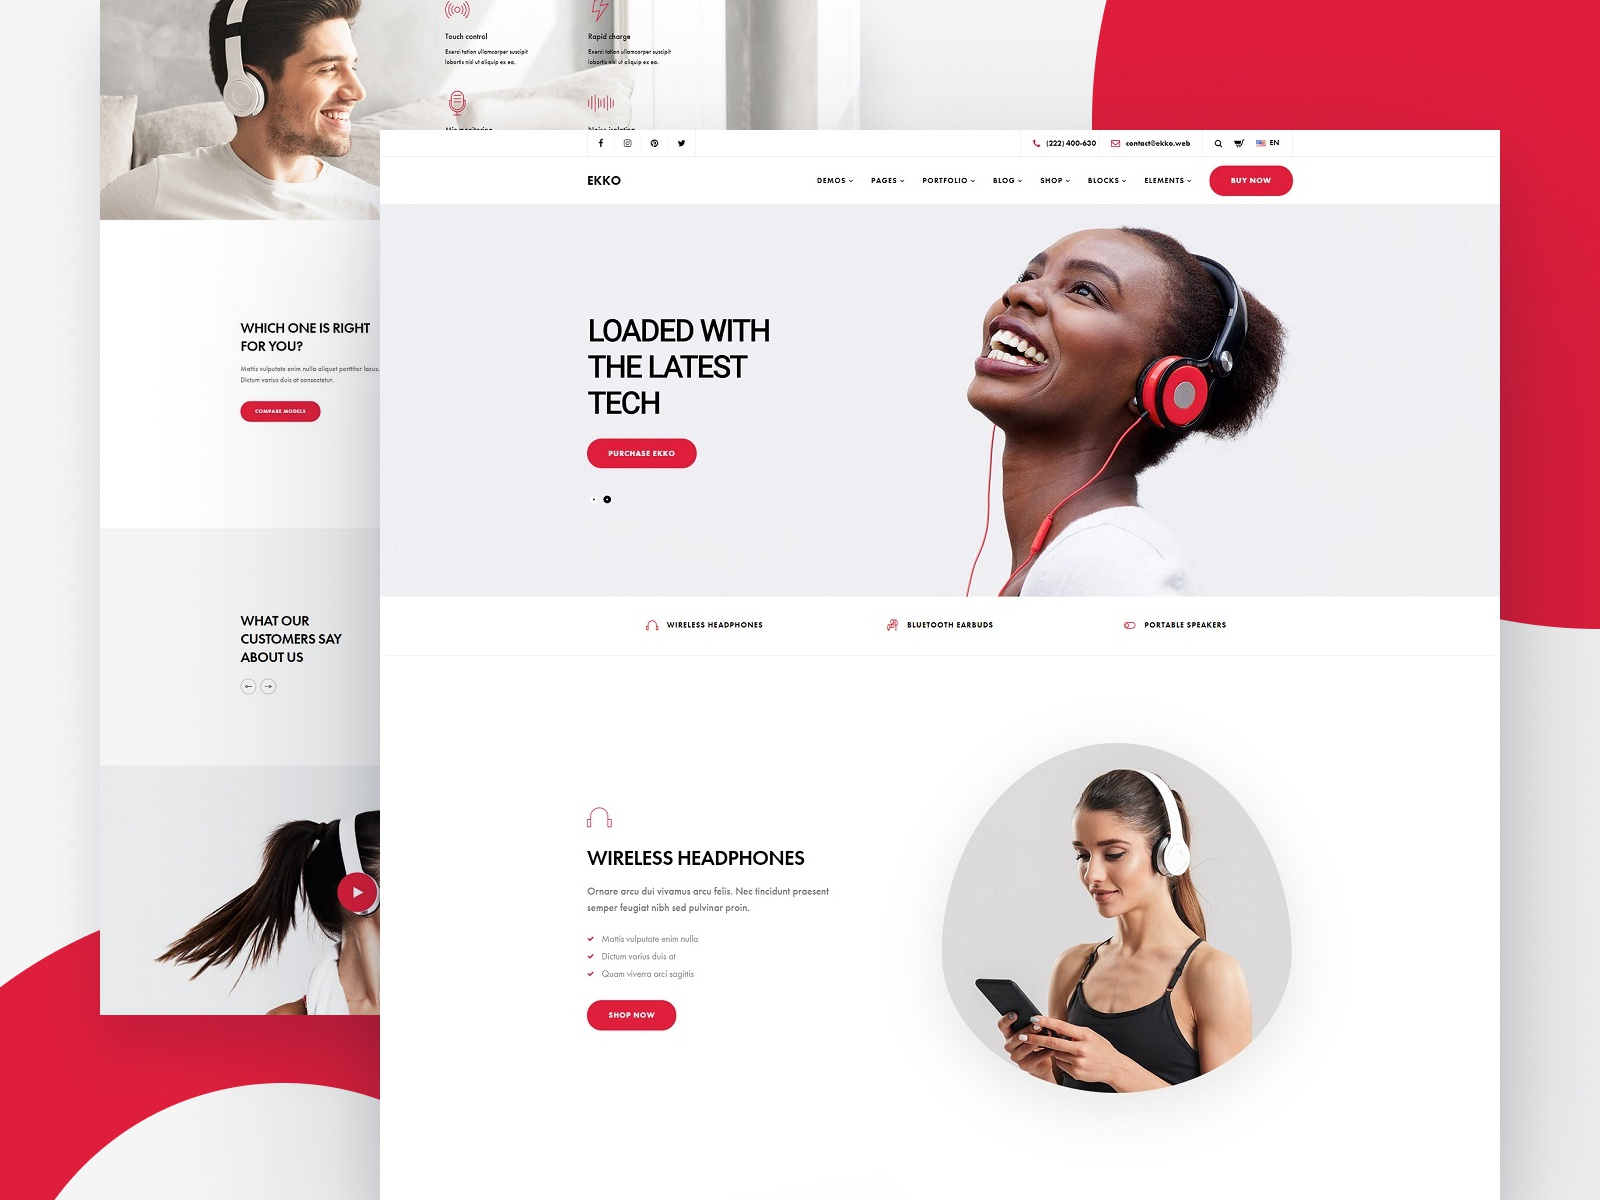 Single Product Website Template from cdn.dribbble.com